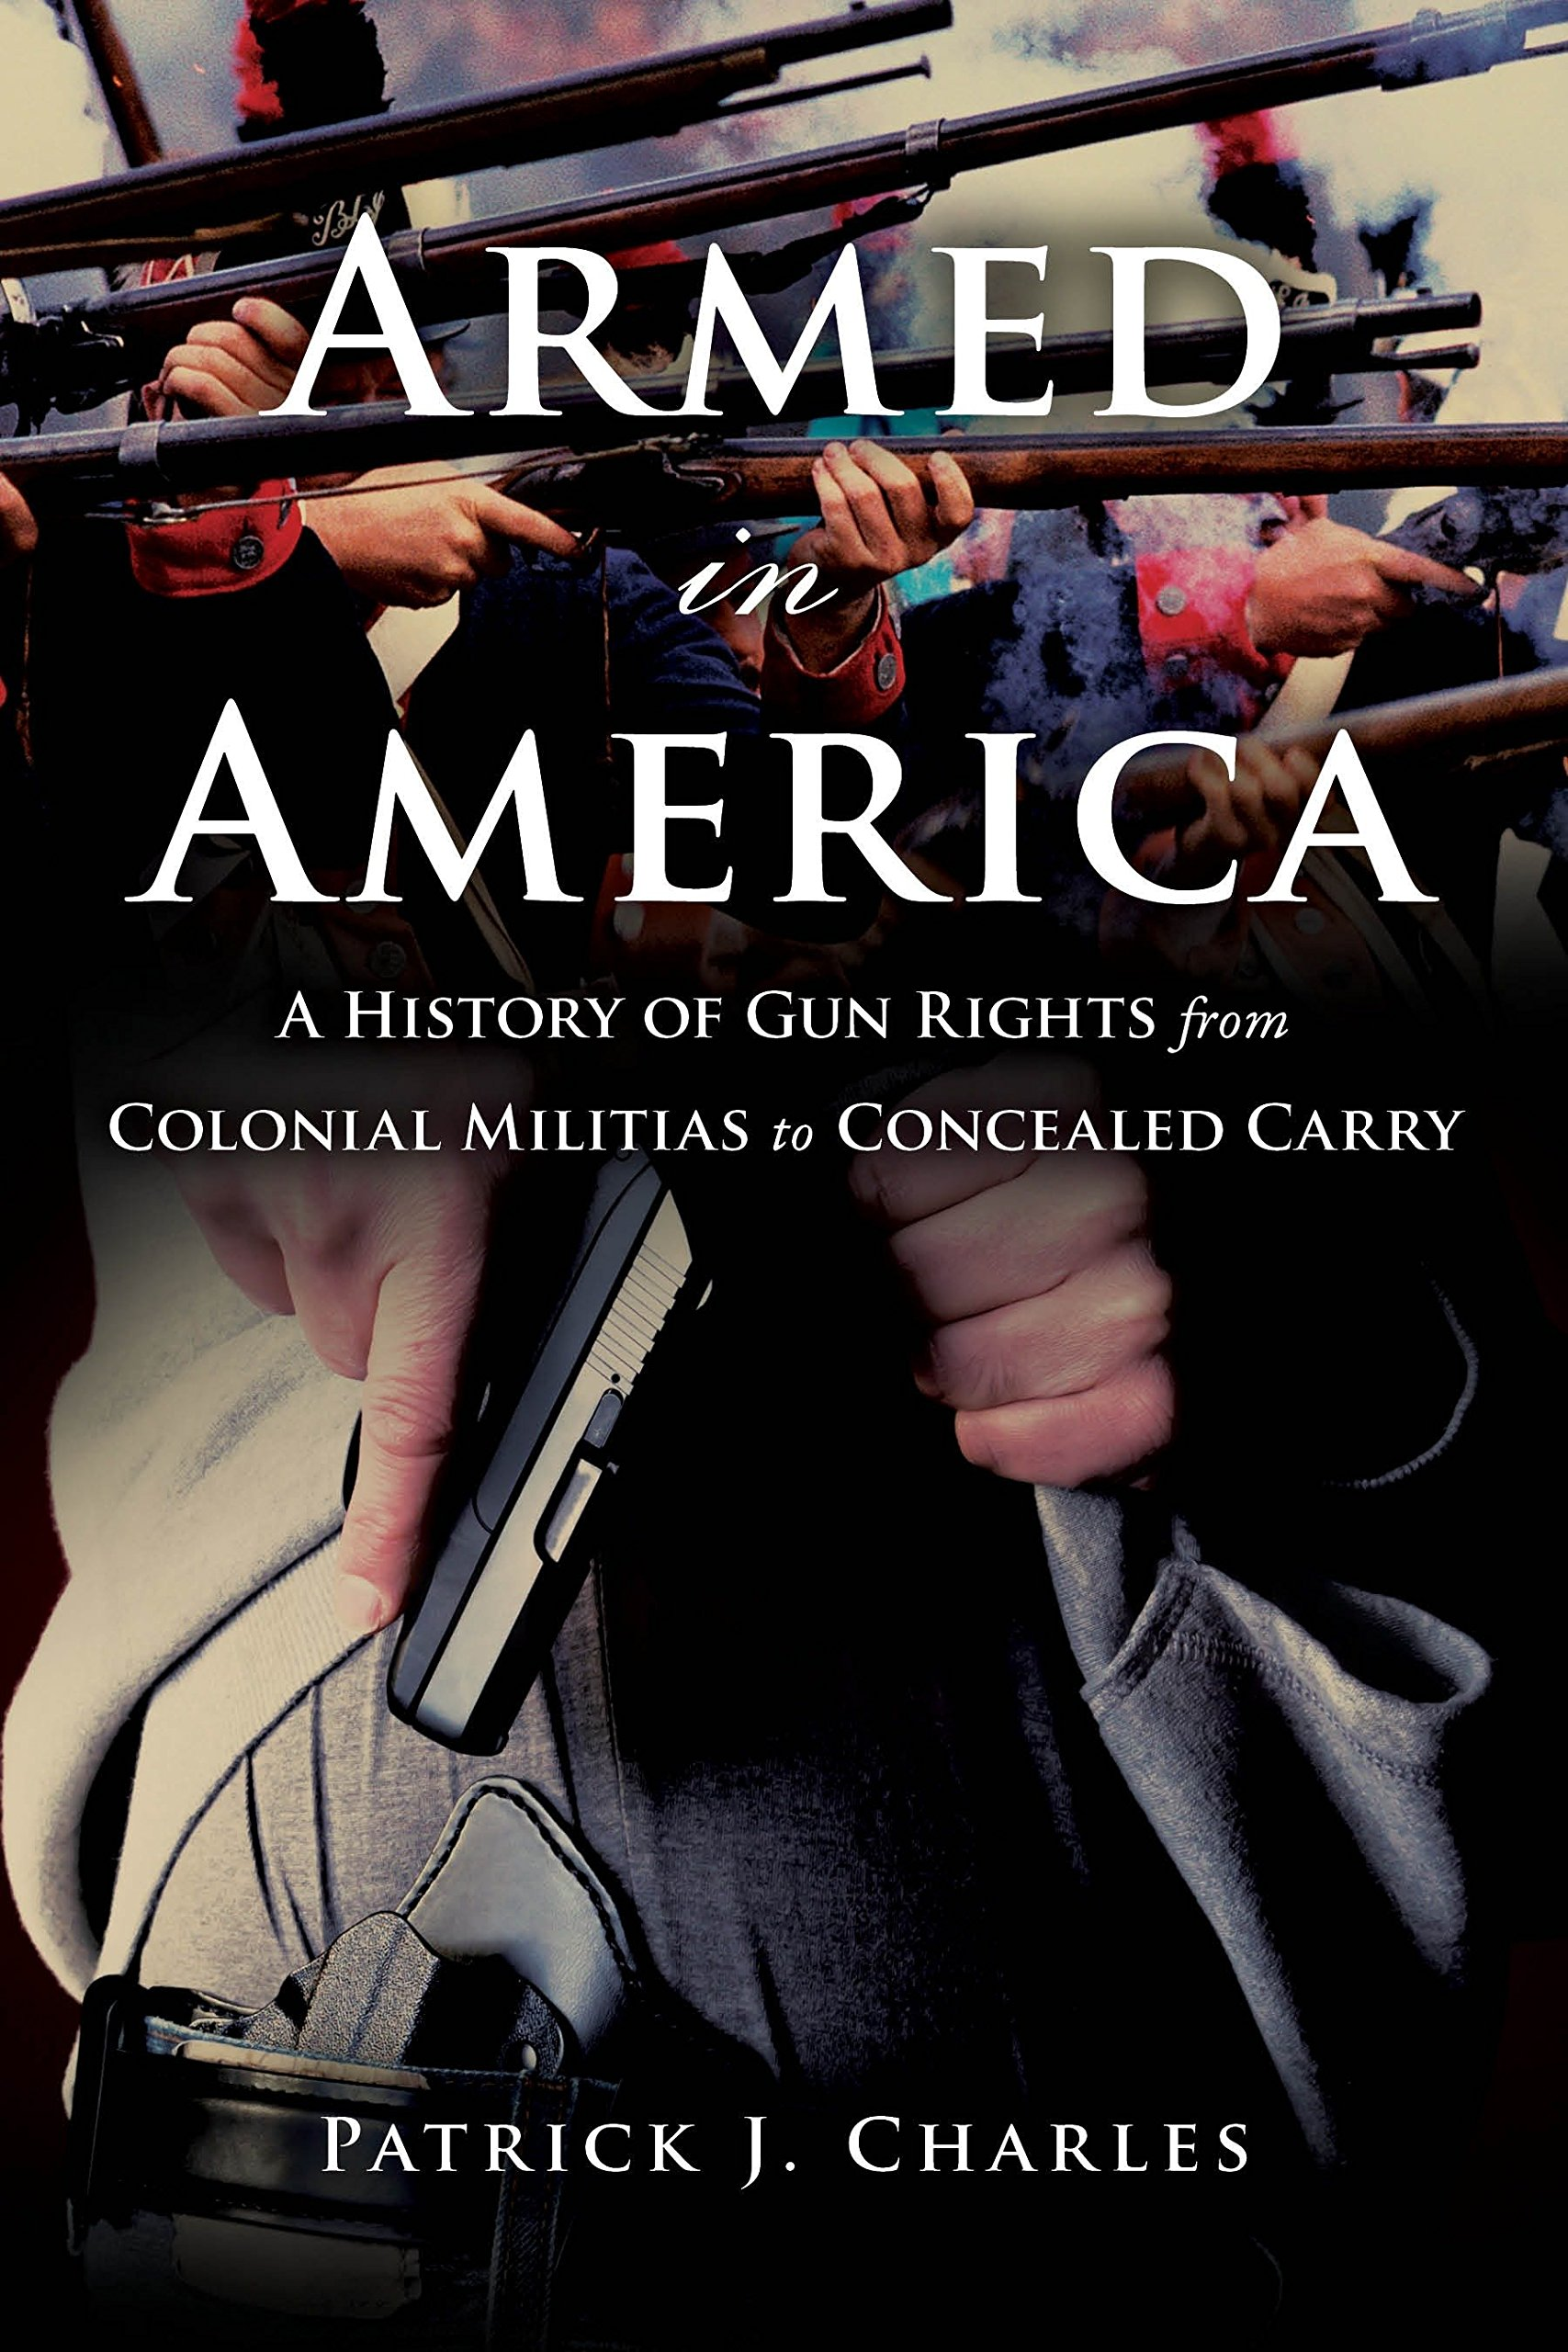 Armed in America:A History of Gun Rights from Colonial Militias to Concealed Carry